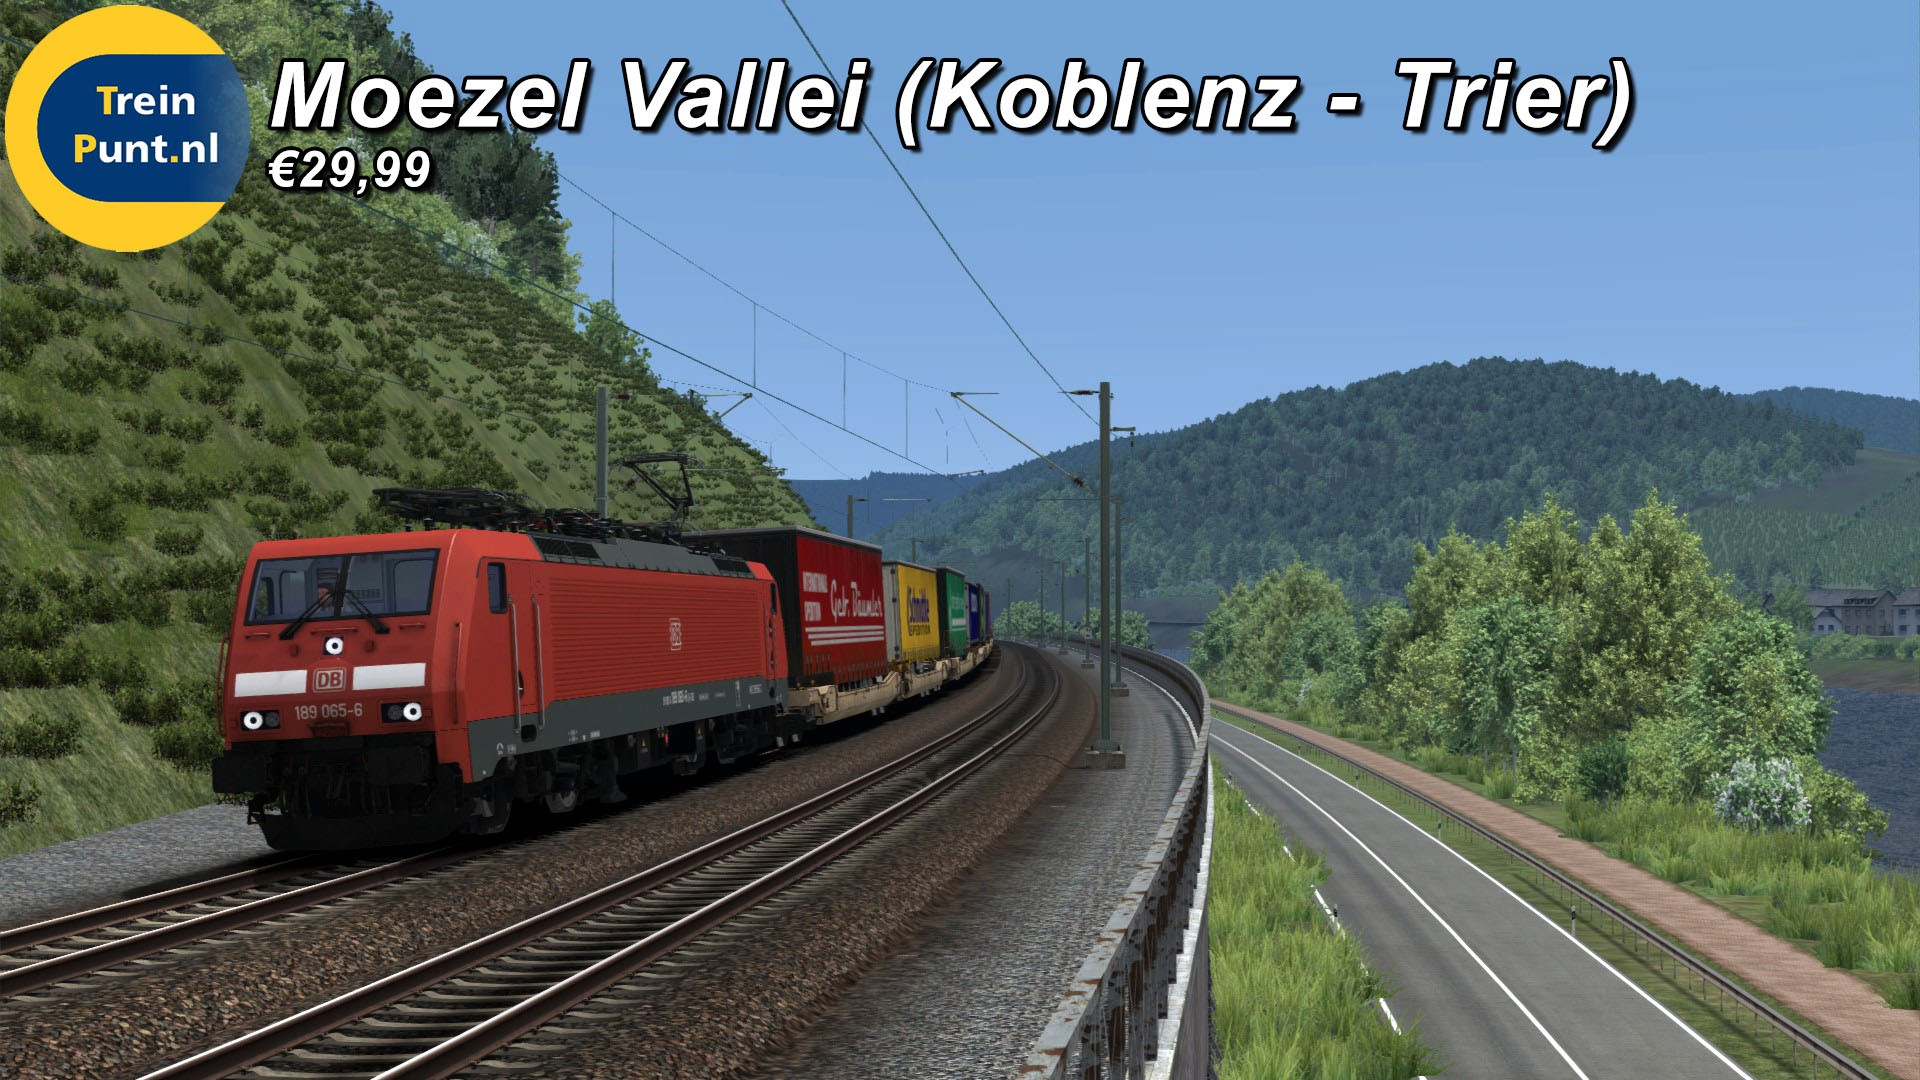 Along the Moselle valley